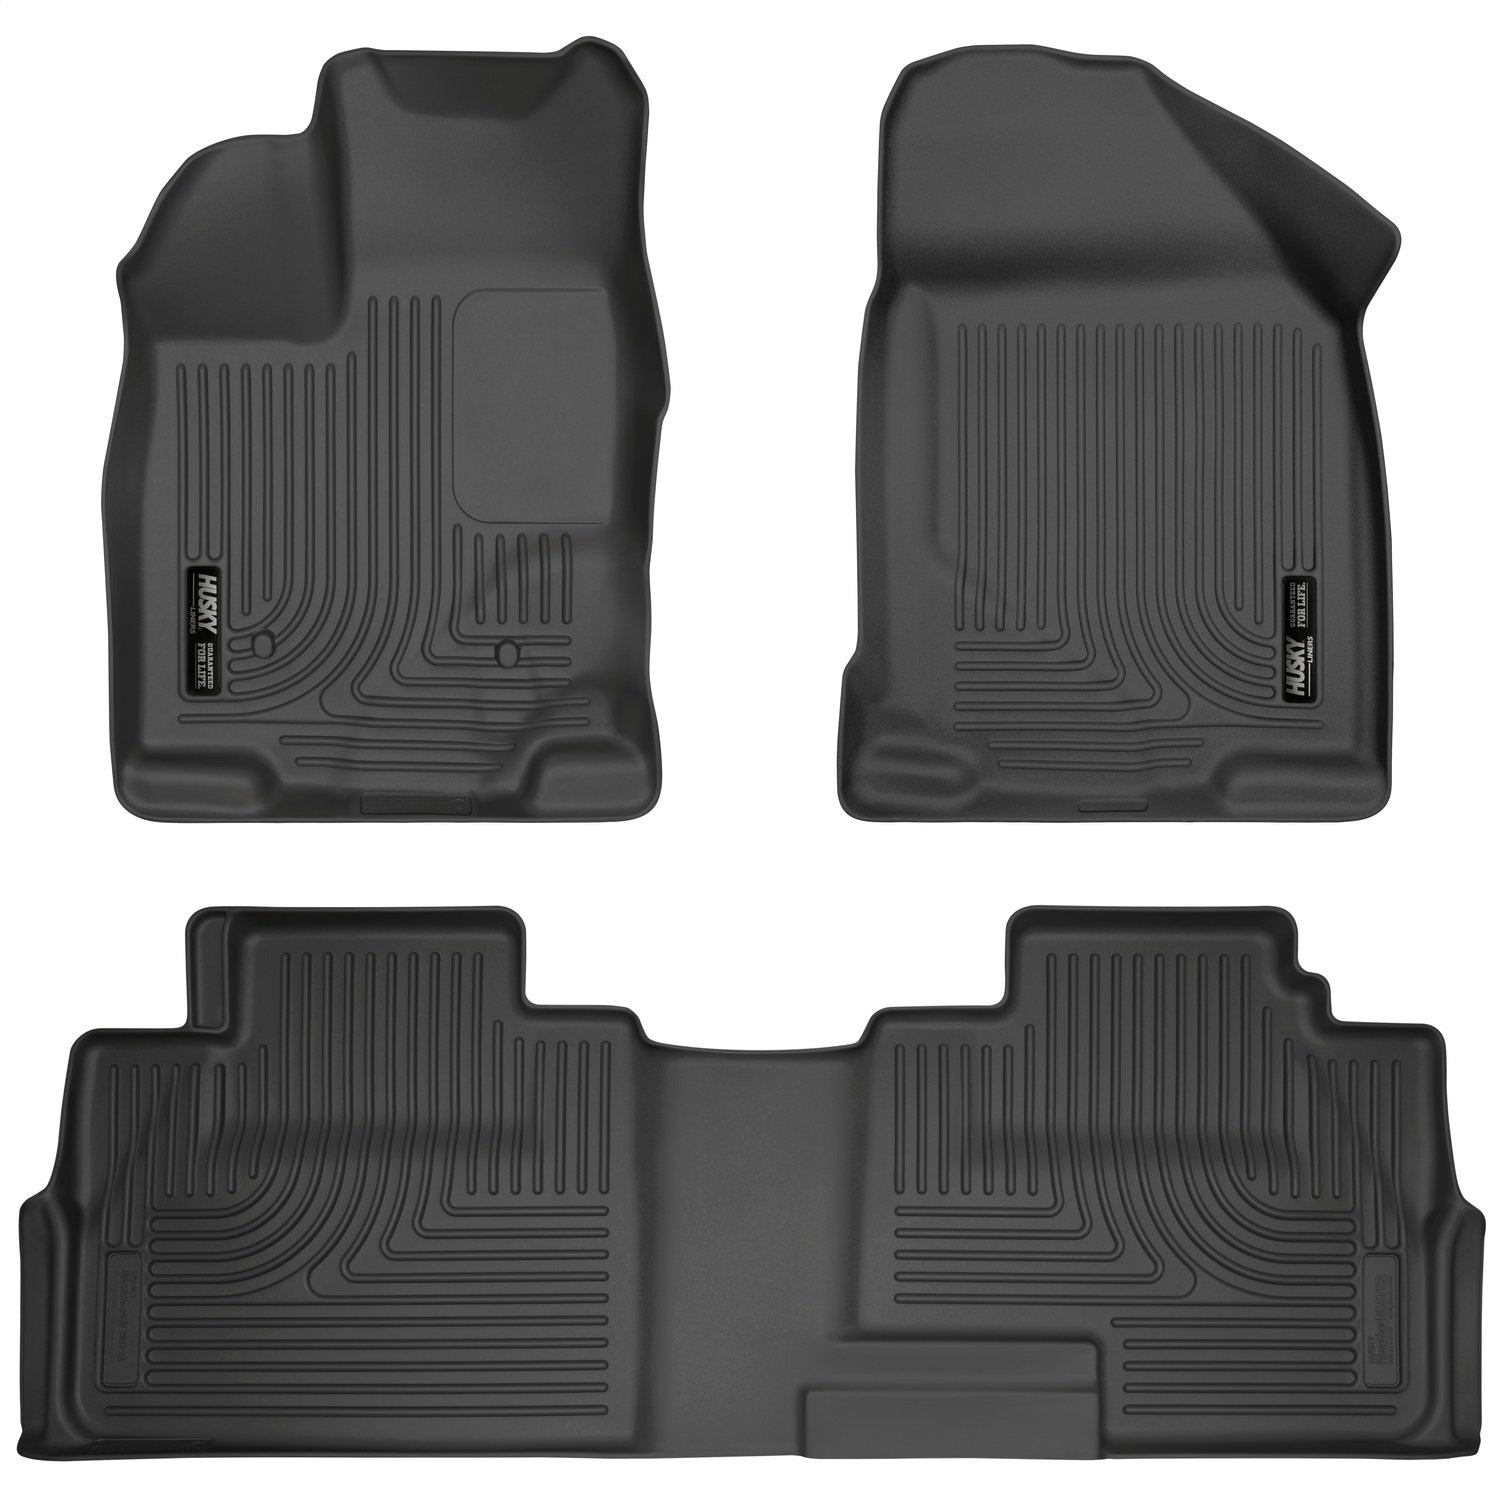 07-15 MKX 99761 Husky Liners Front /& 2nd Seat Floor Liners Fits 07-14 Edge